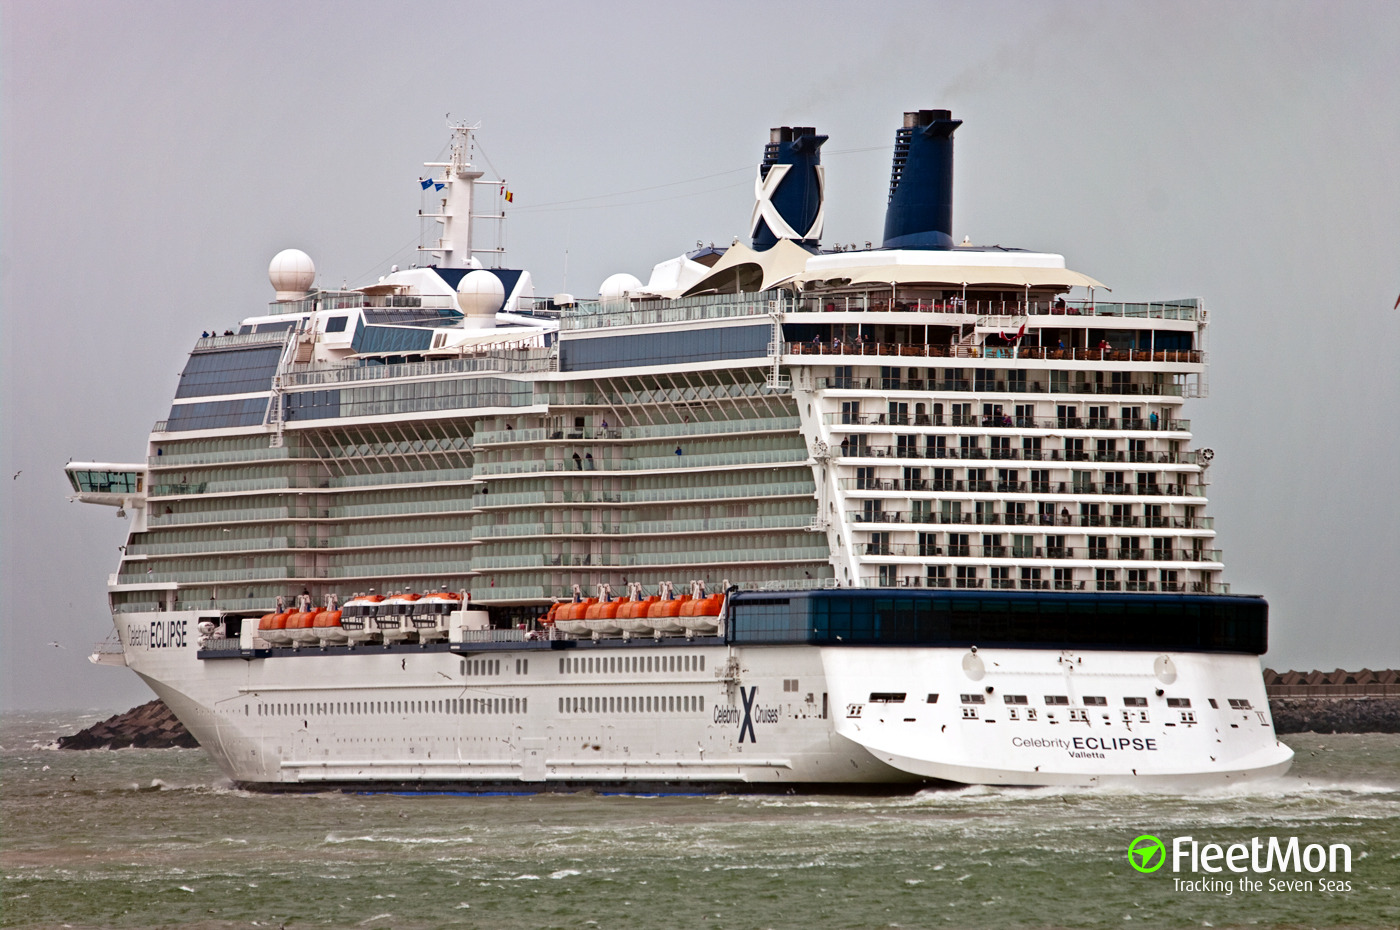 photo of celebrity eclipse imo 9404314 mmsi 249666000